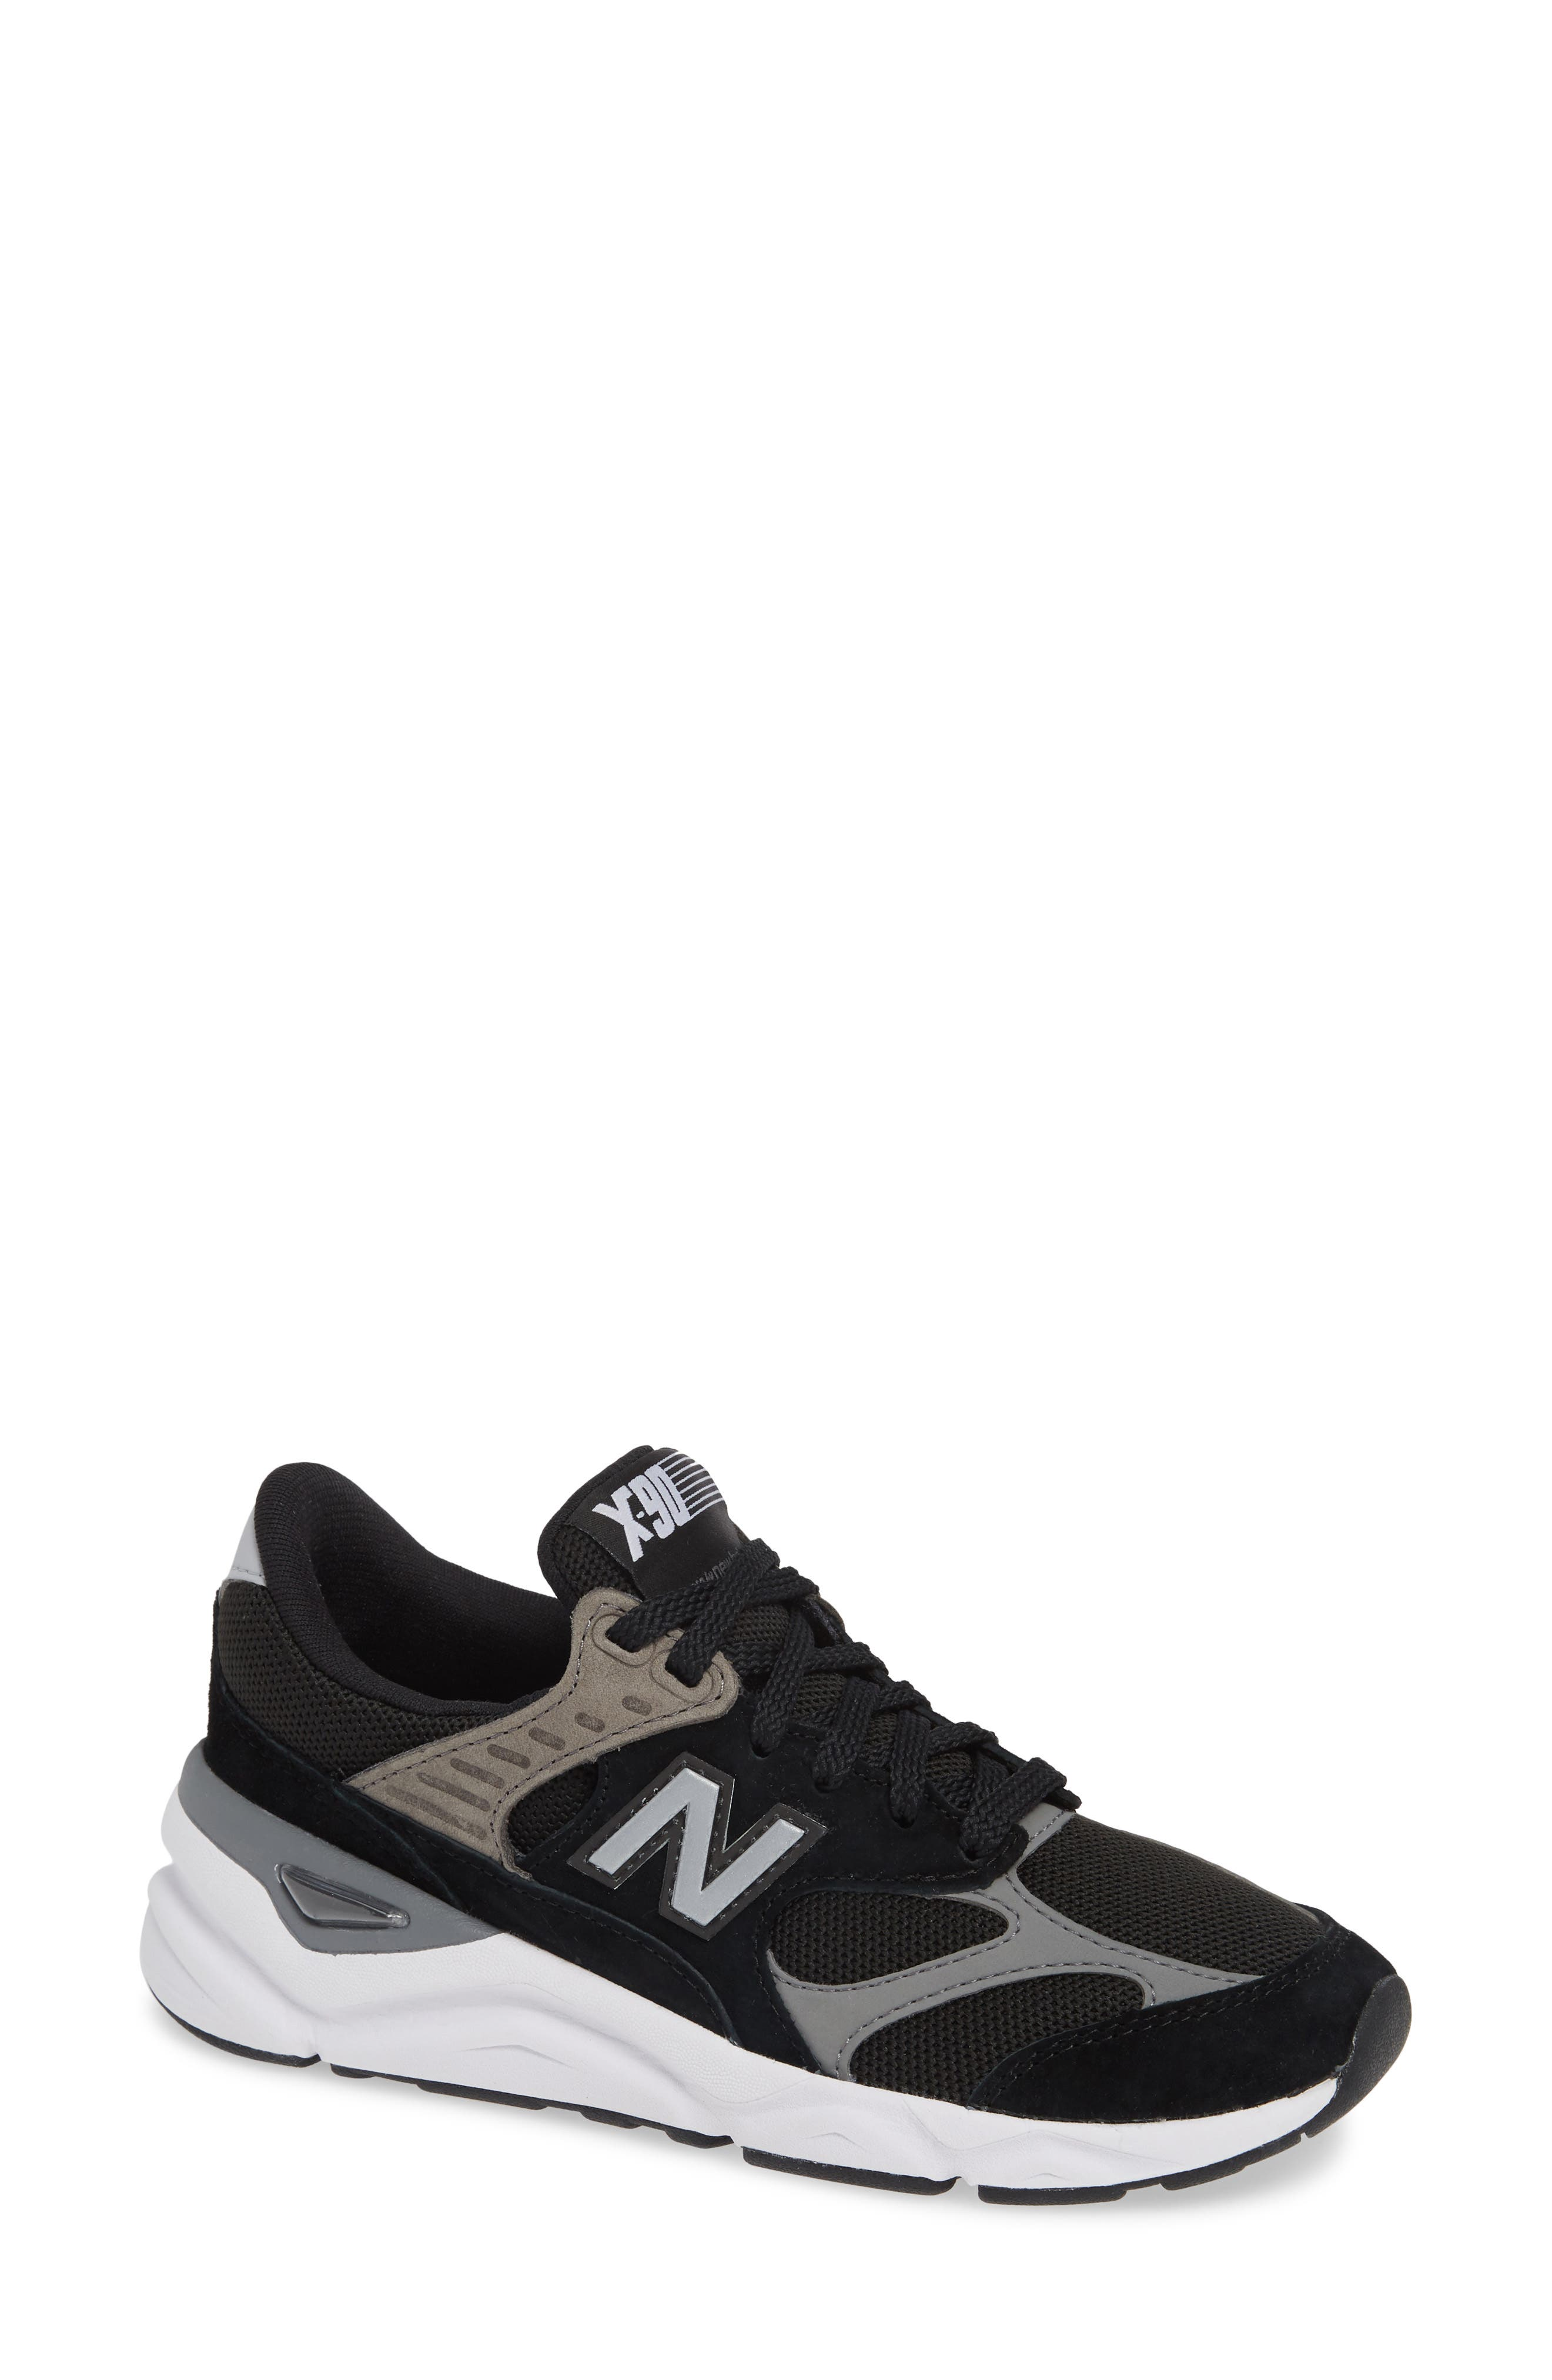 NEW BALANCE Women'S X90 Re-Constructed Lace-Up Sneakers in Black/ Black